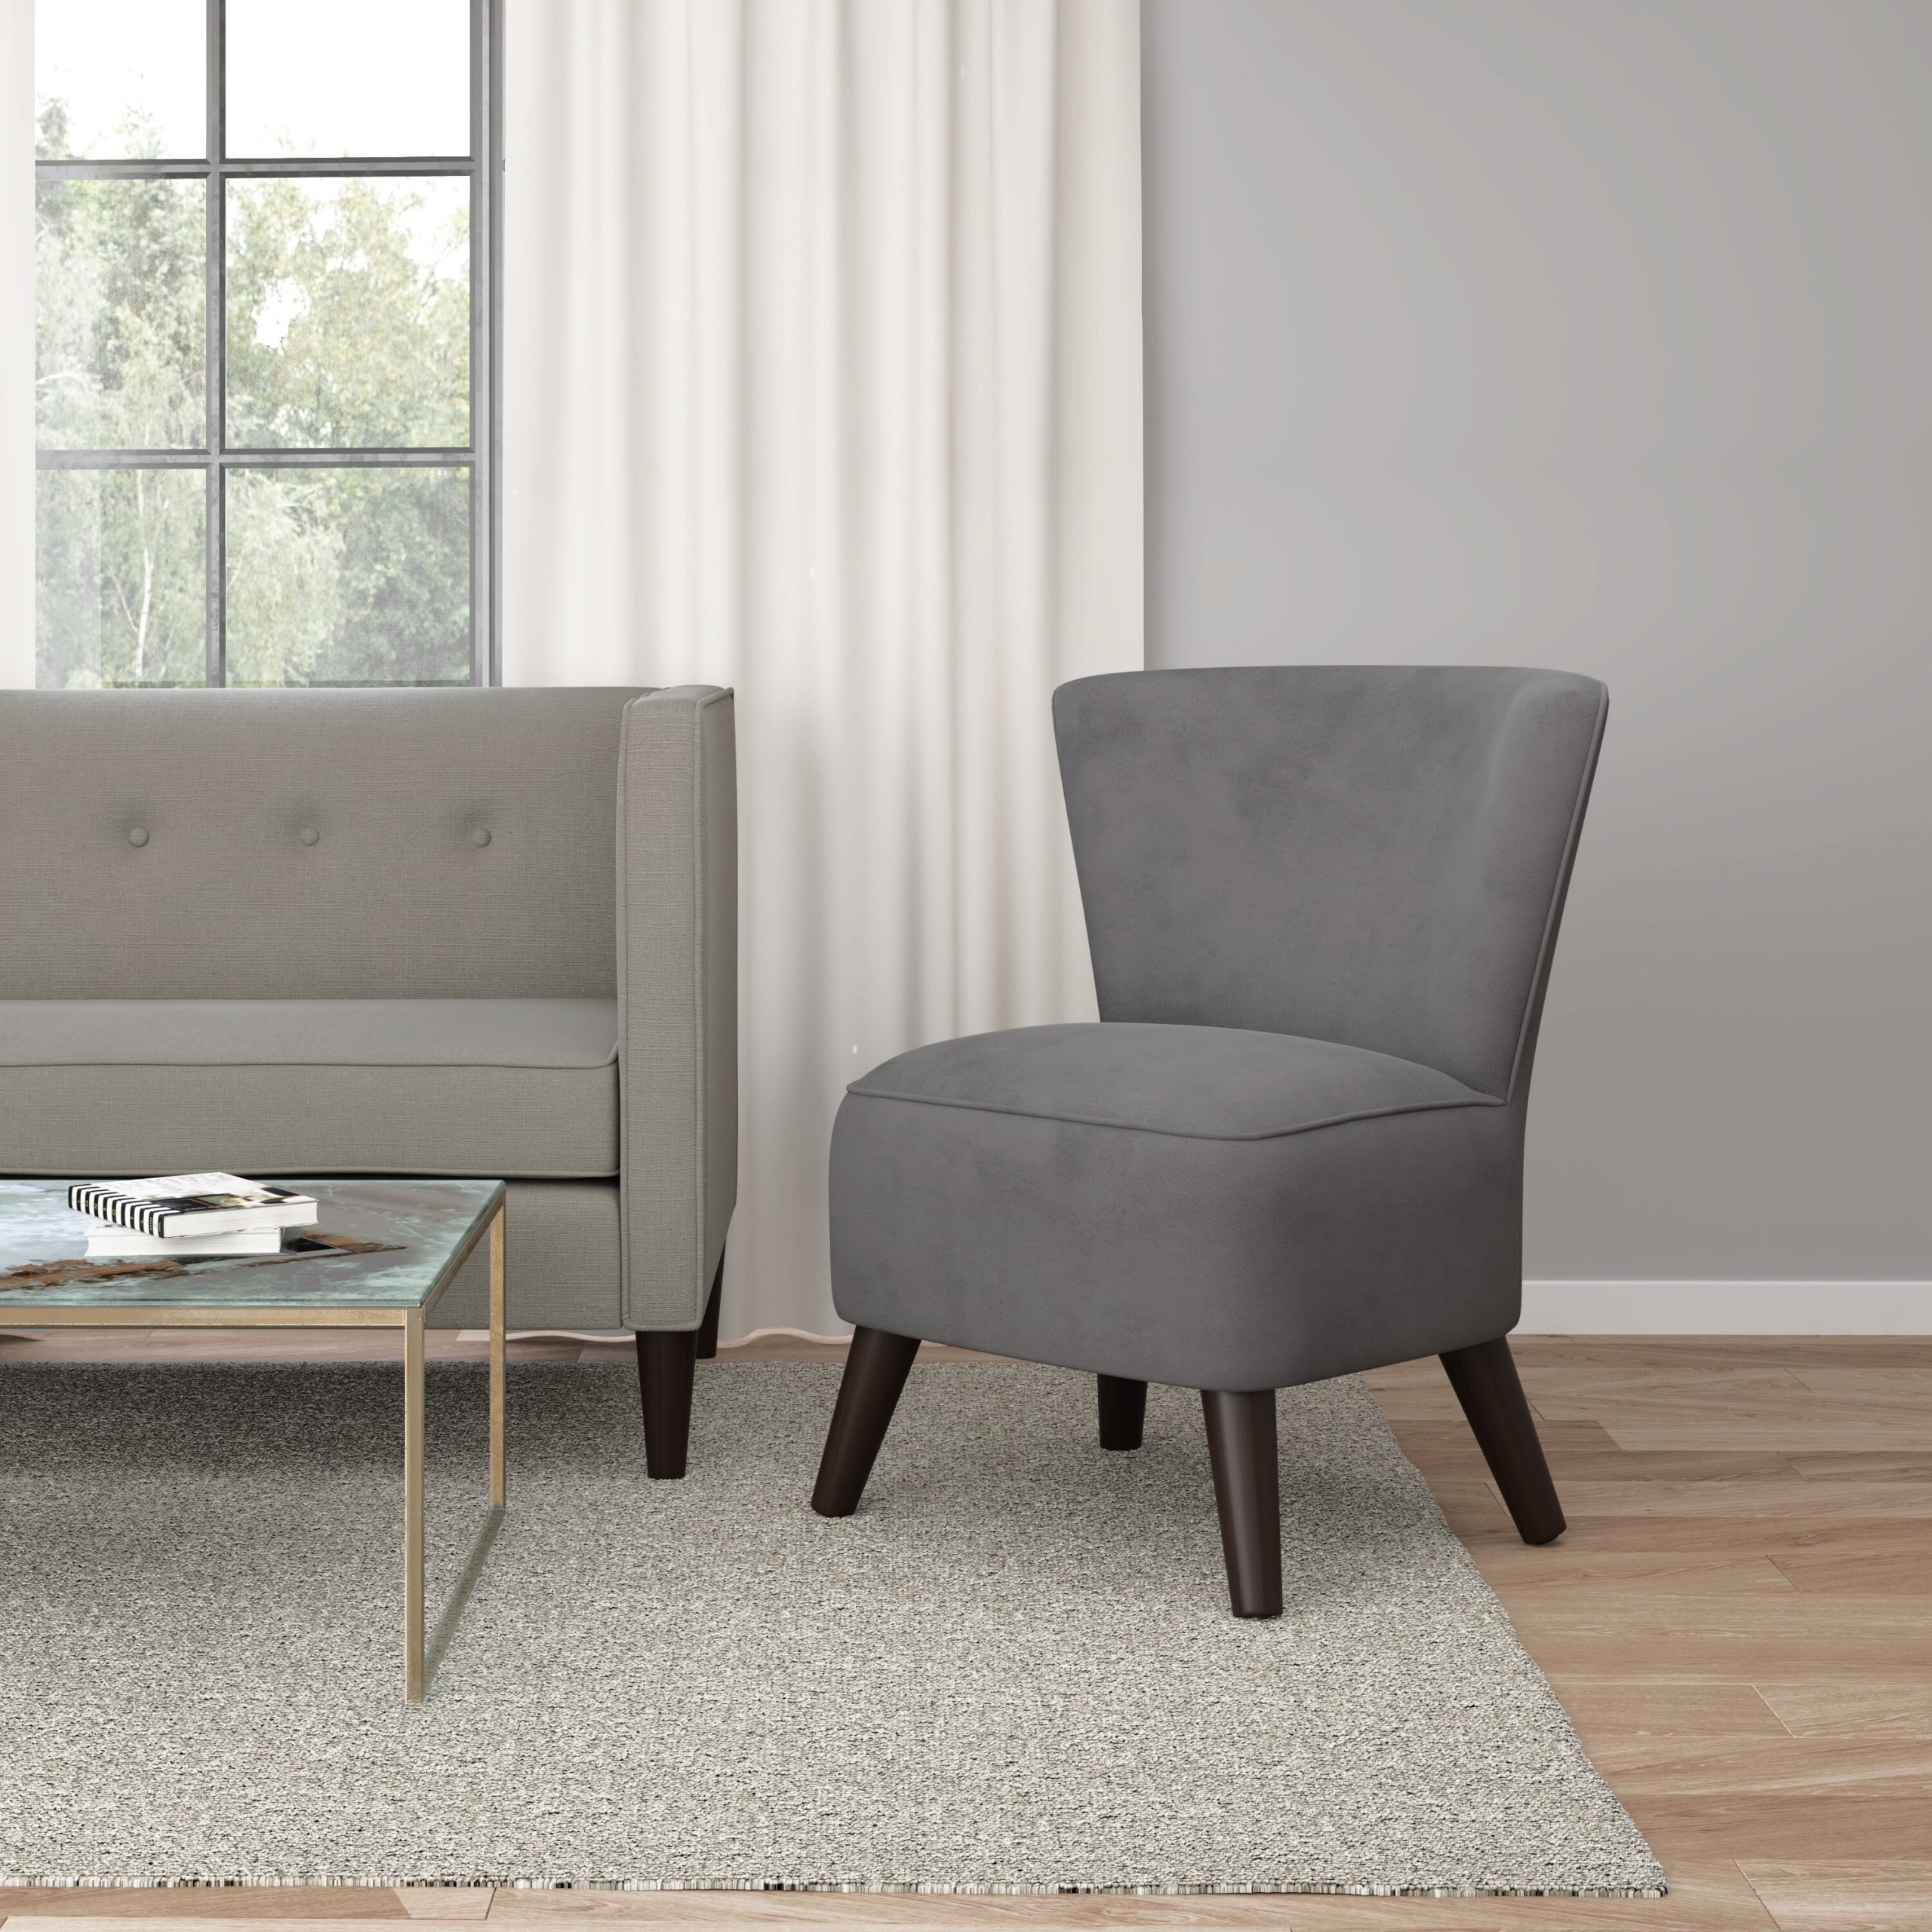 Grey Slipper Accent Chairs You'Ll Love In 2021 | Wayfair With Regard To Goodspeed Slipper Chairs (Set Of 2) (View 8 of 15)